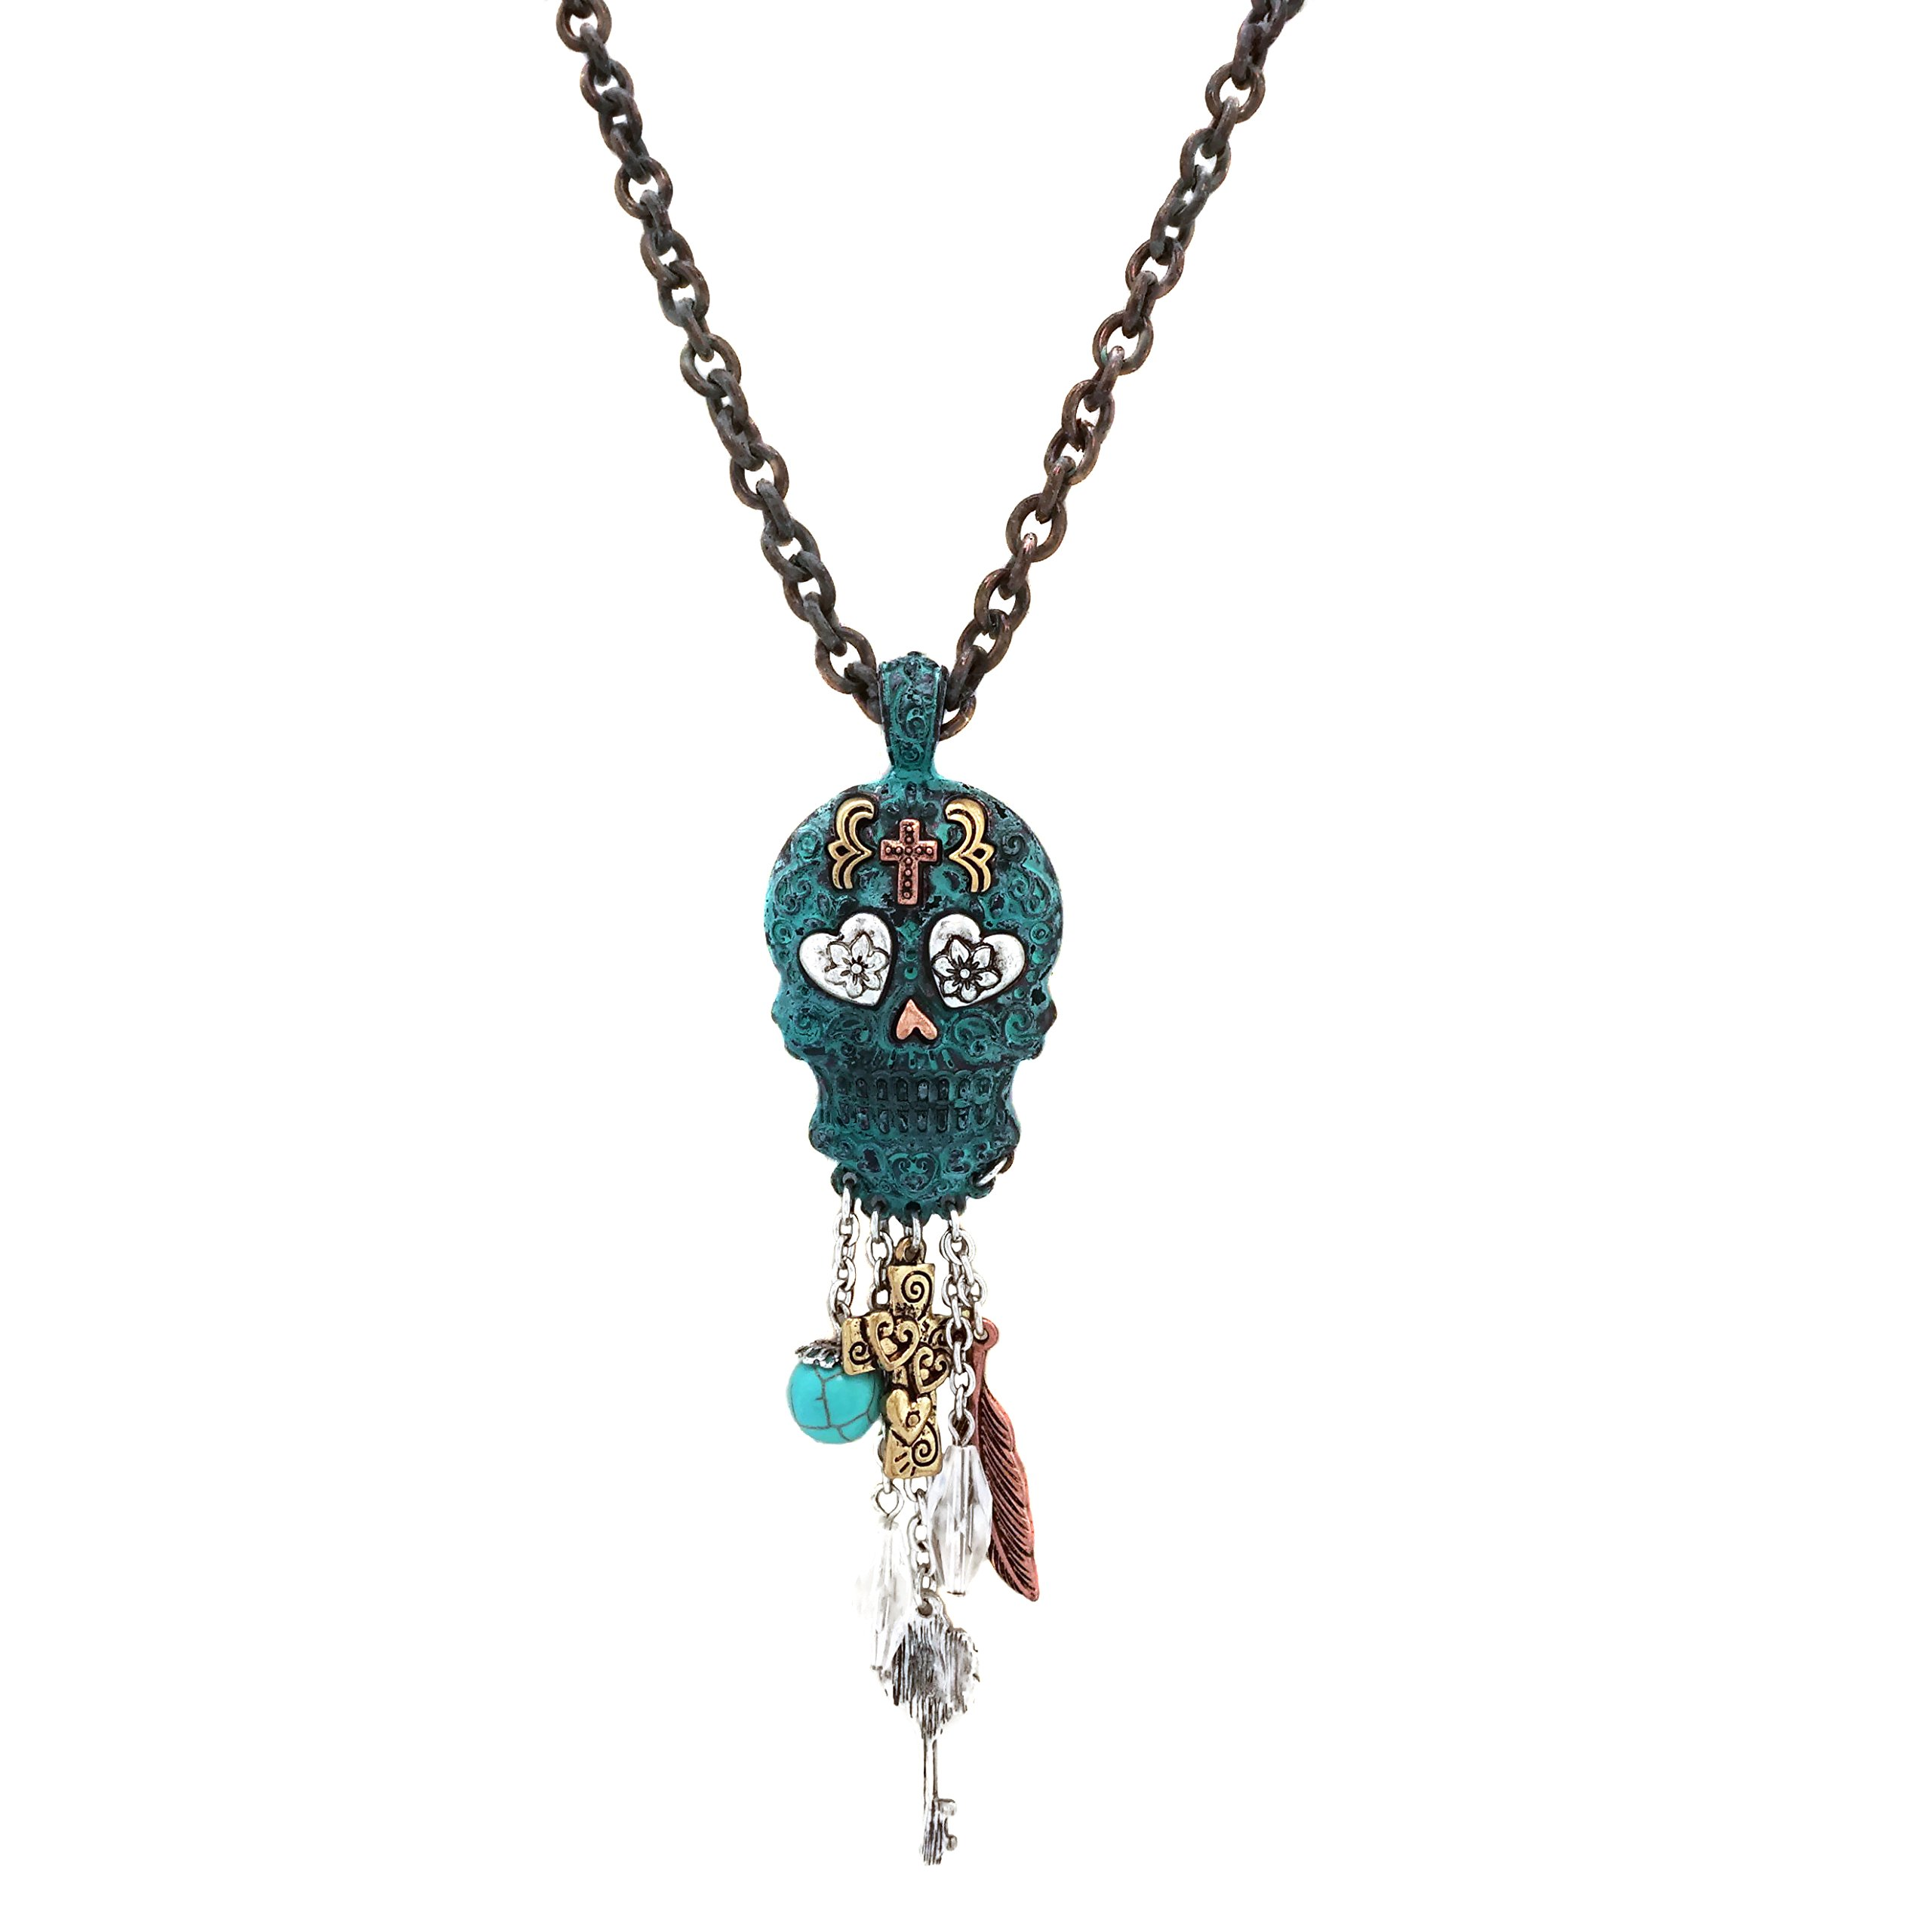 Elosee Charm Dangling Sugar Skull Pendant Long Necklace 30 inch / 76cm